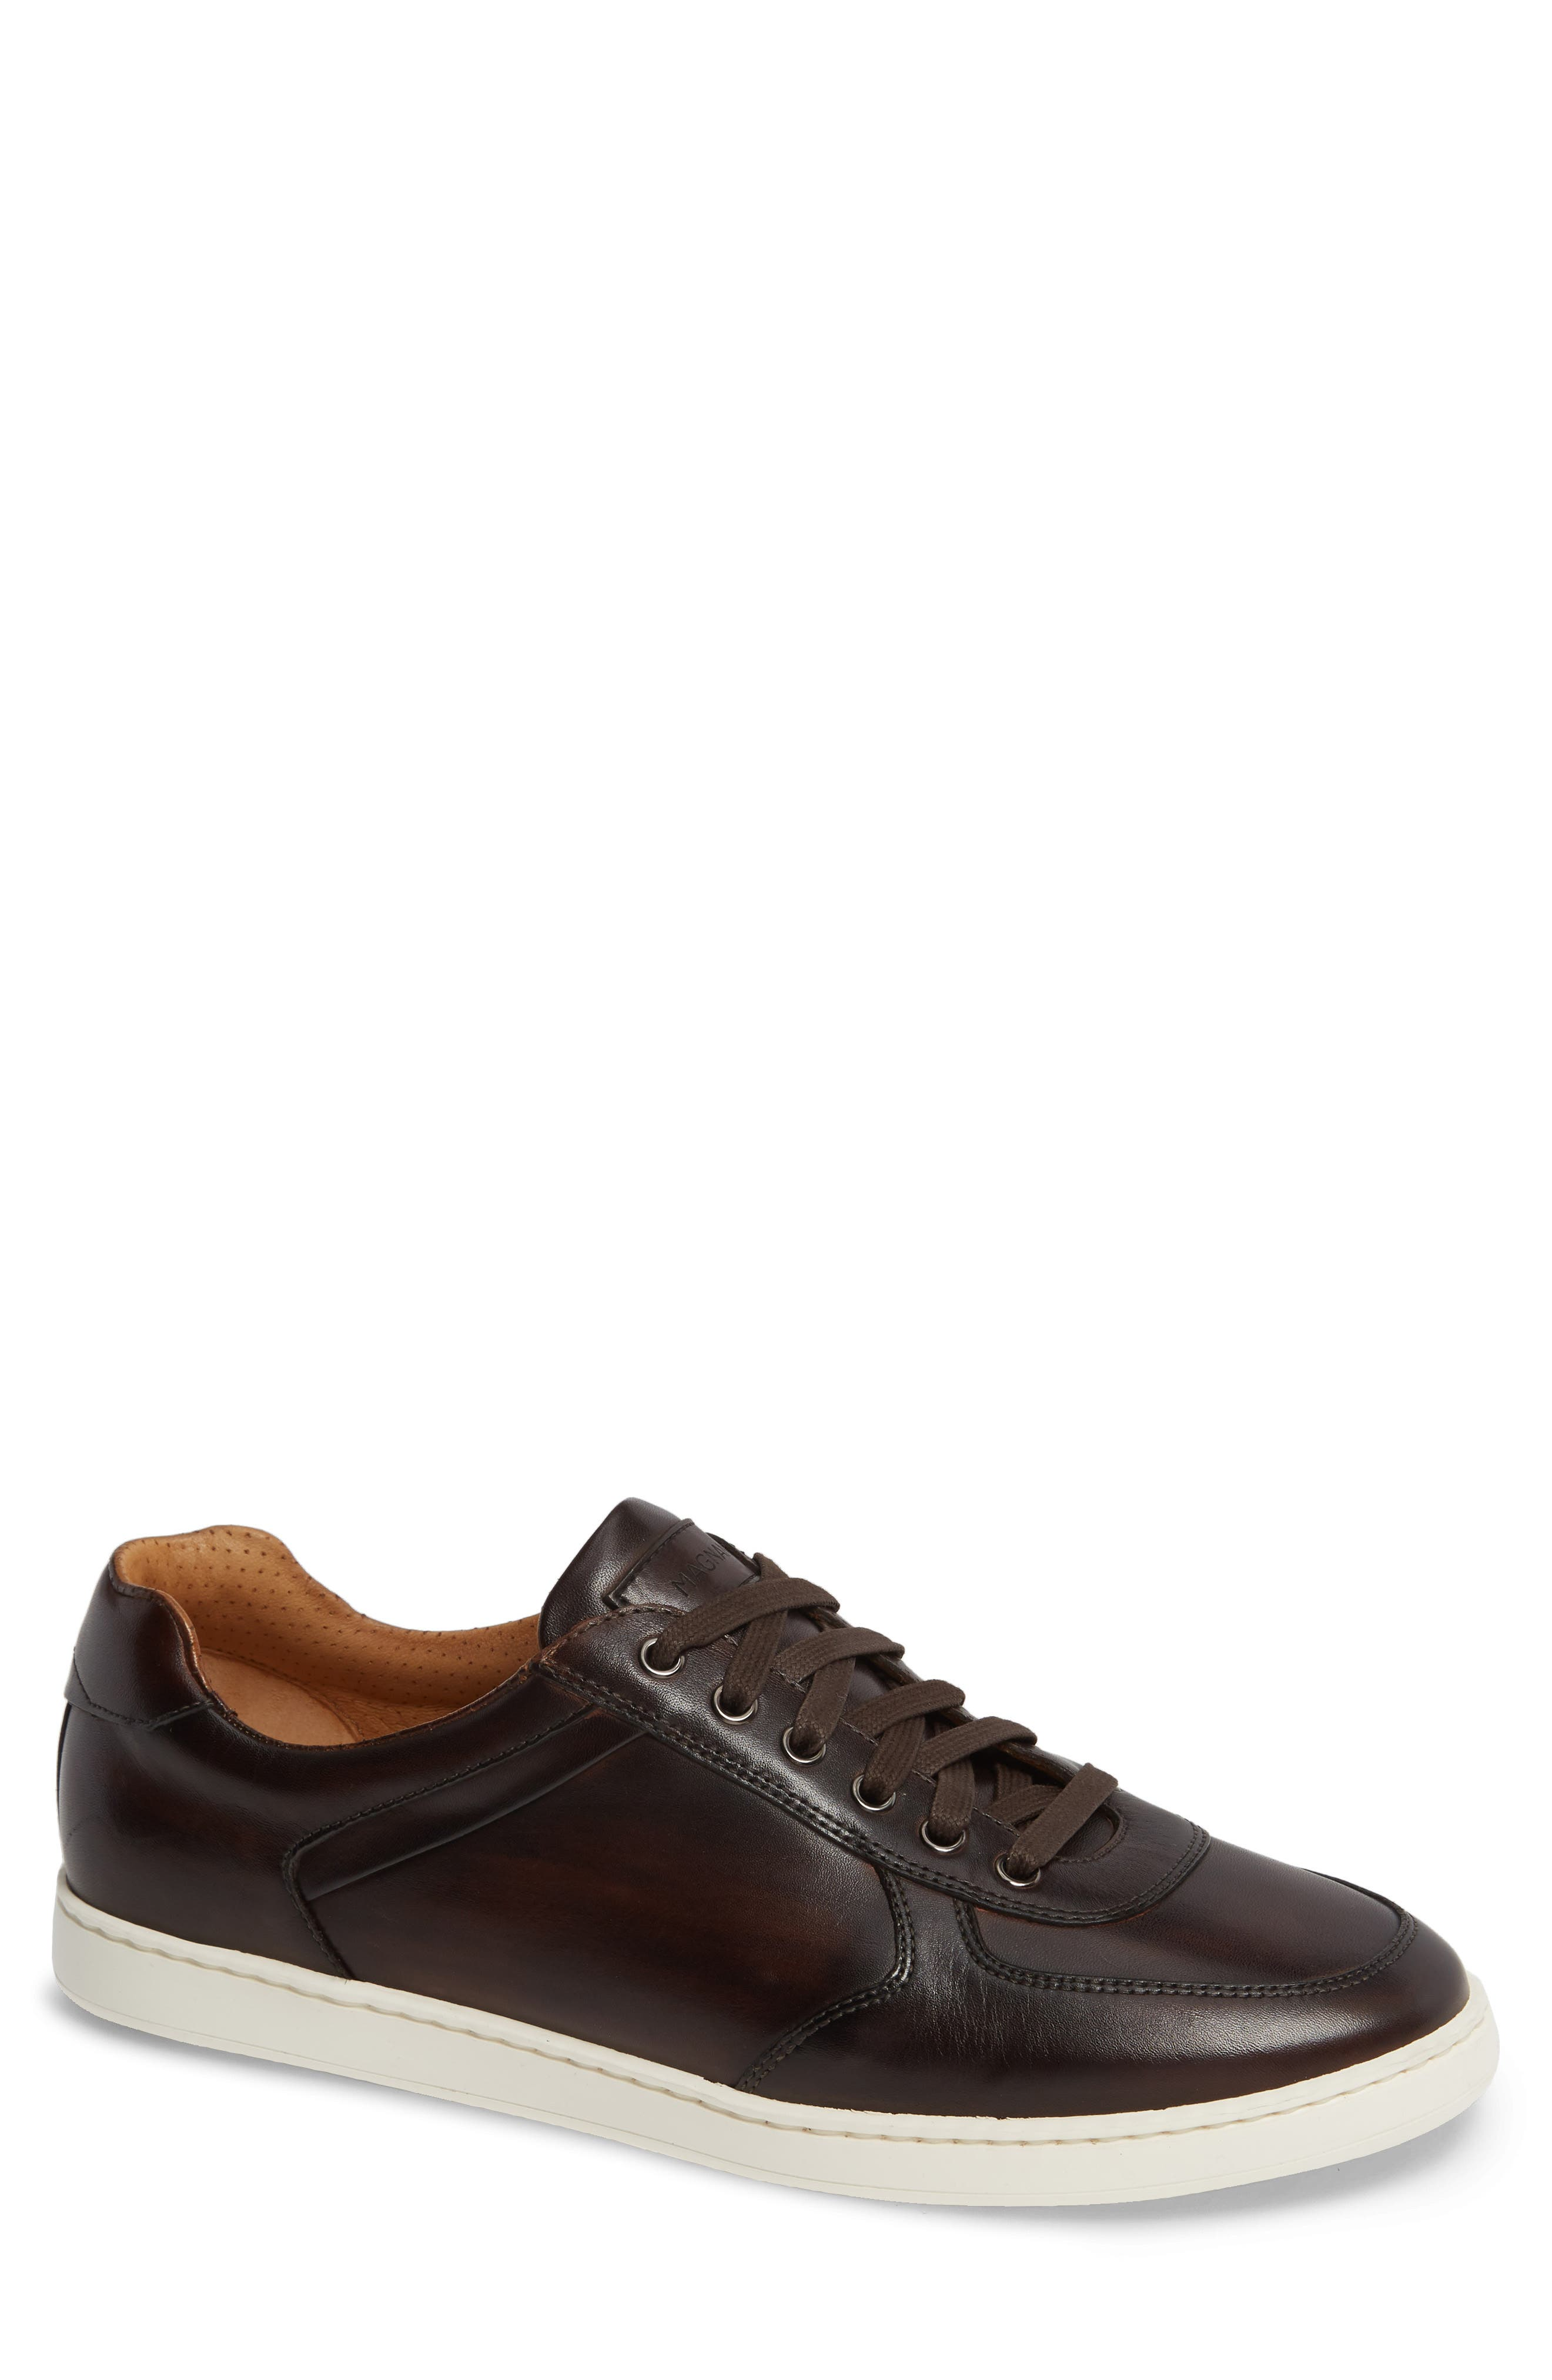 Echo Sneaker,                         Main,                         color, BROWN LEATHER